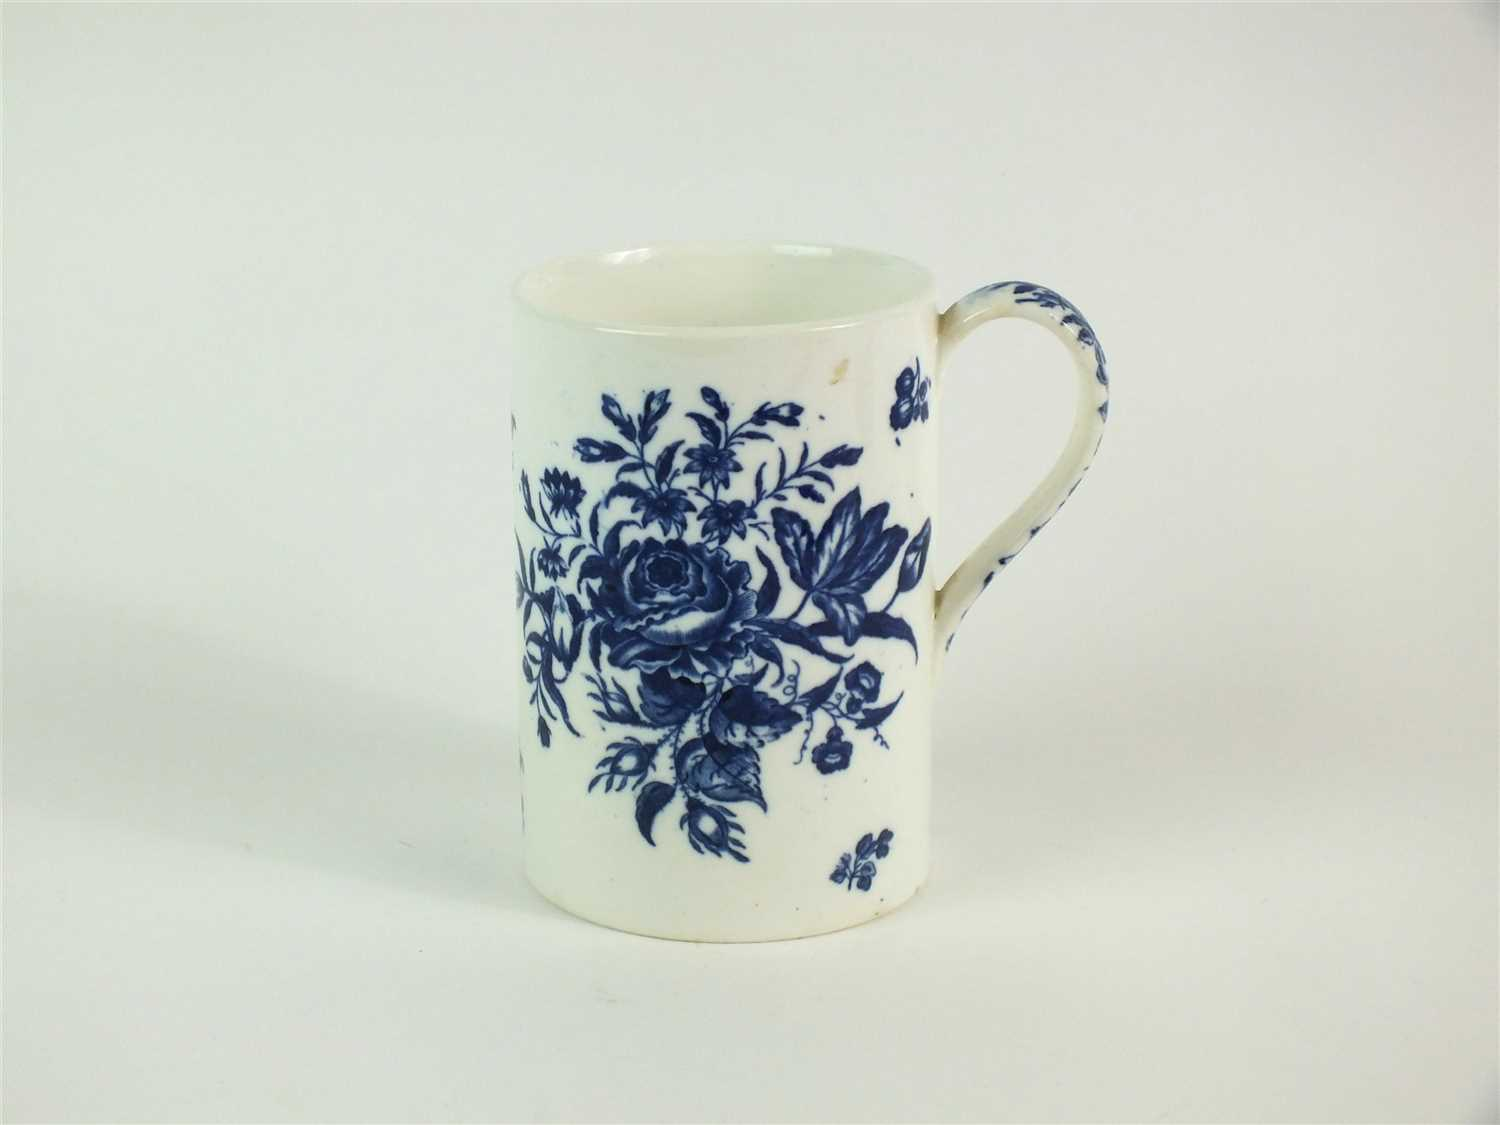 Lot 31-A large Coalport blue and white mug